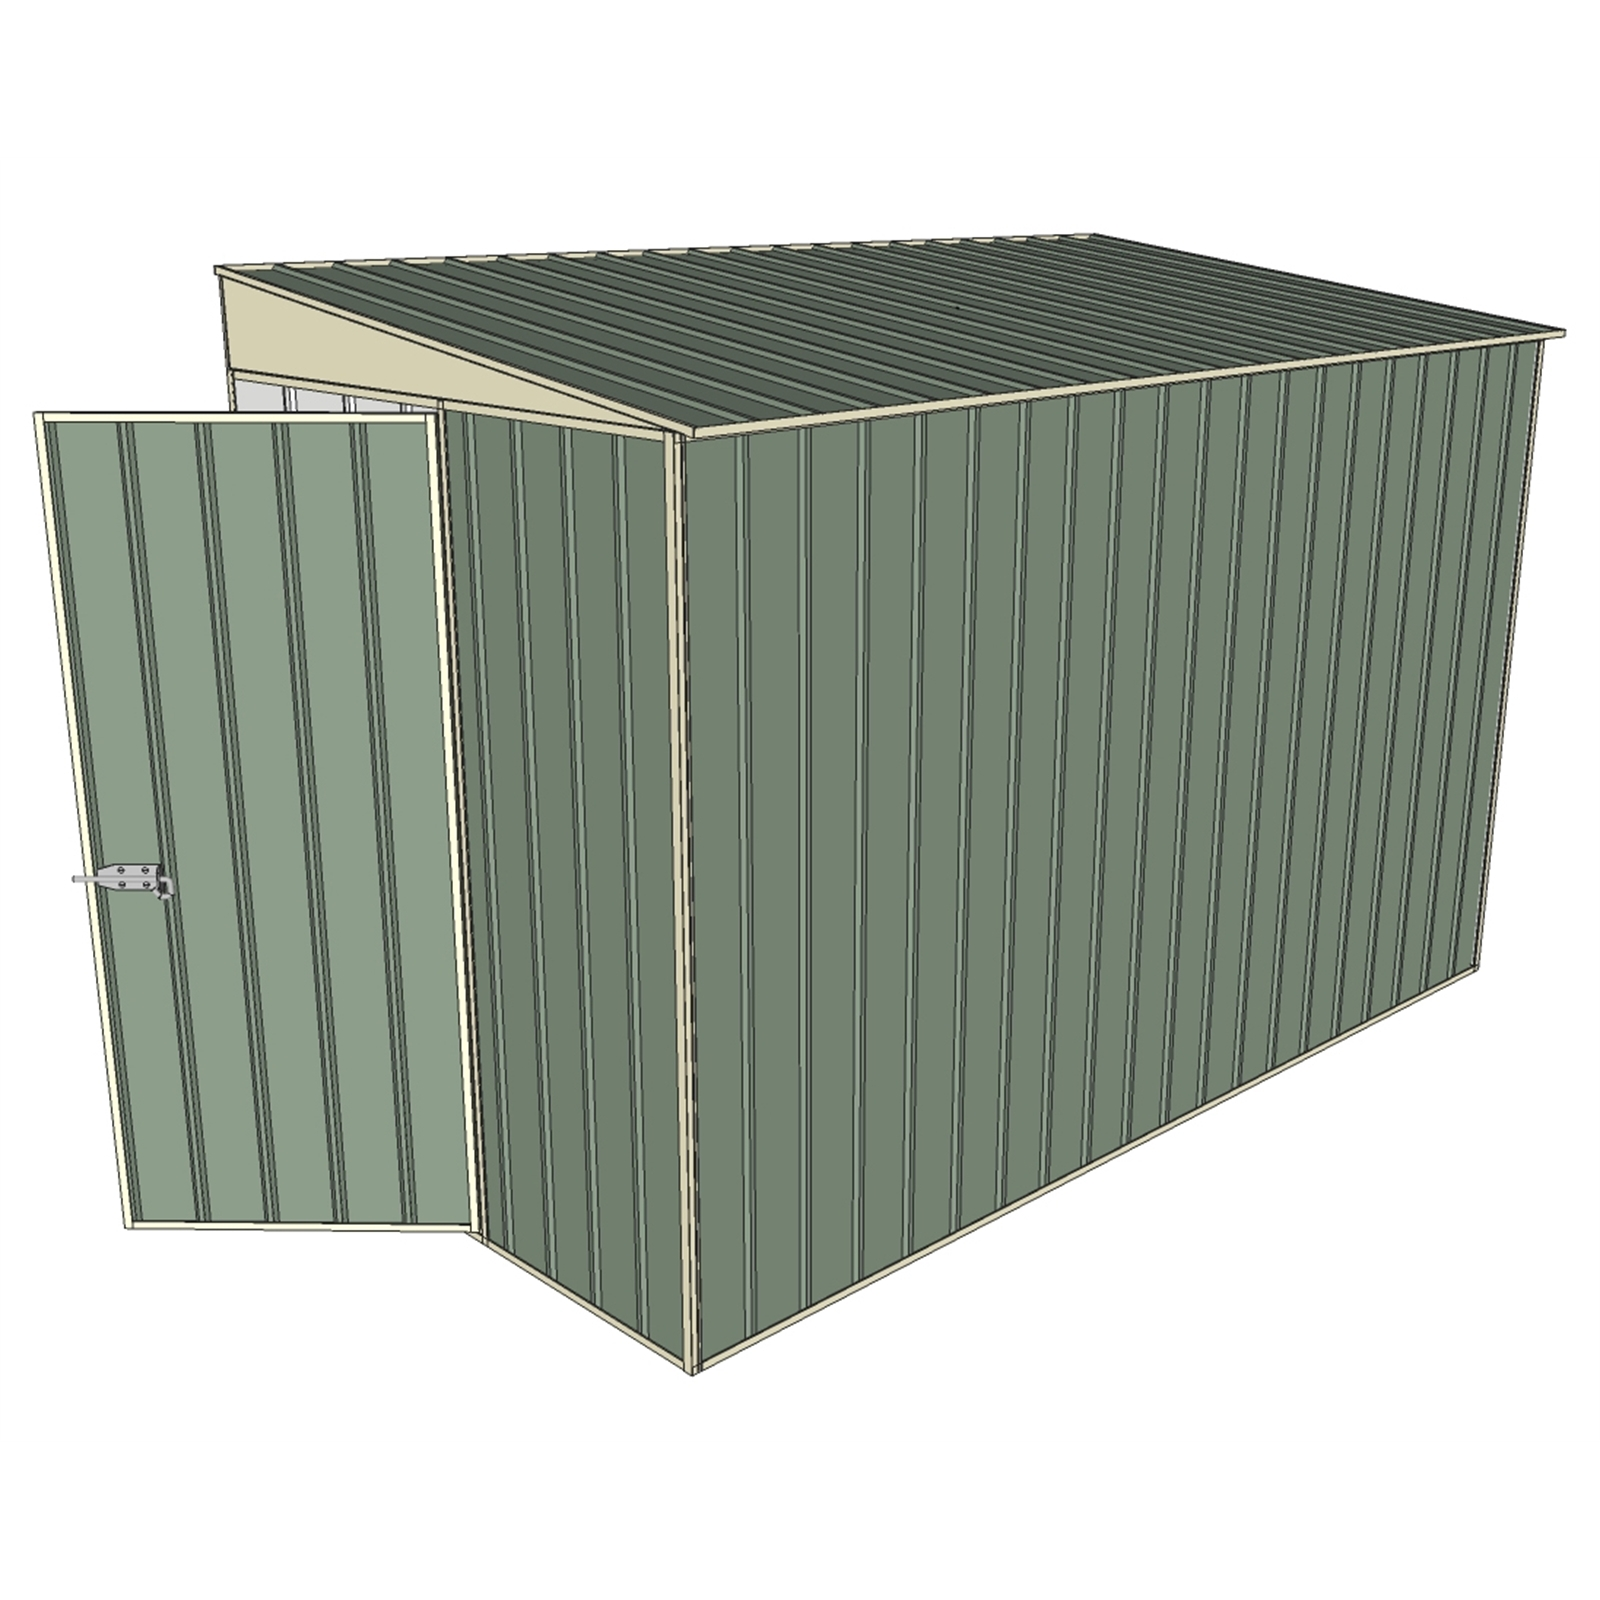 Build-a-Shed 1.5 x 3.0 x 2.0m Tunnel Shed Tunnel Hinged Door with No Side Doors - Green